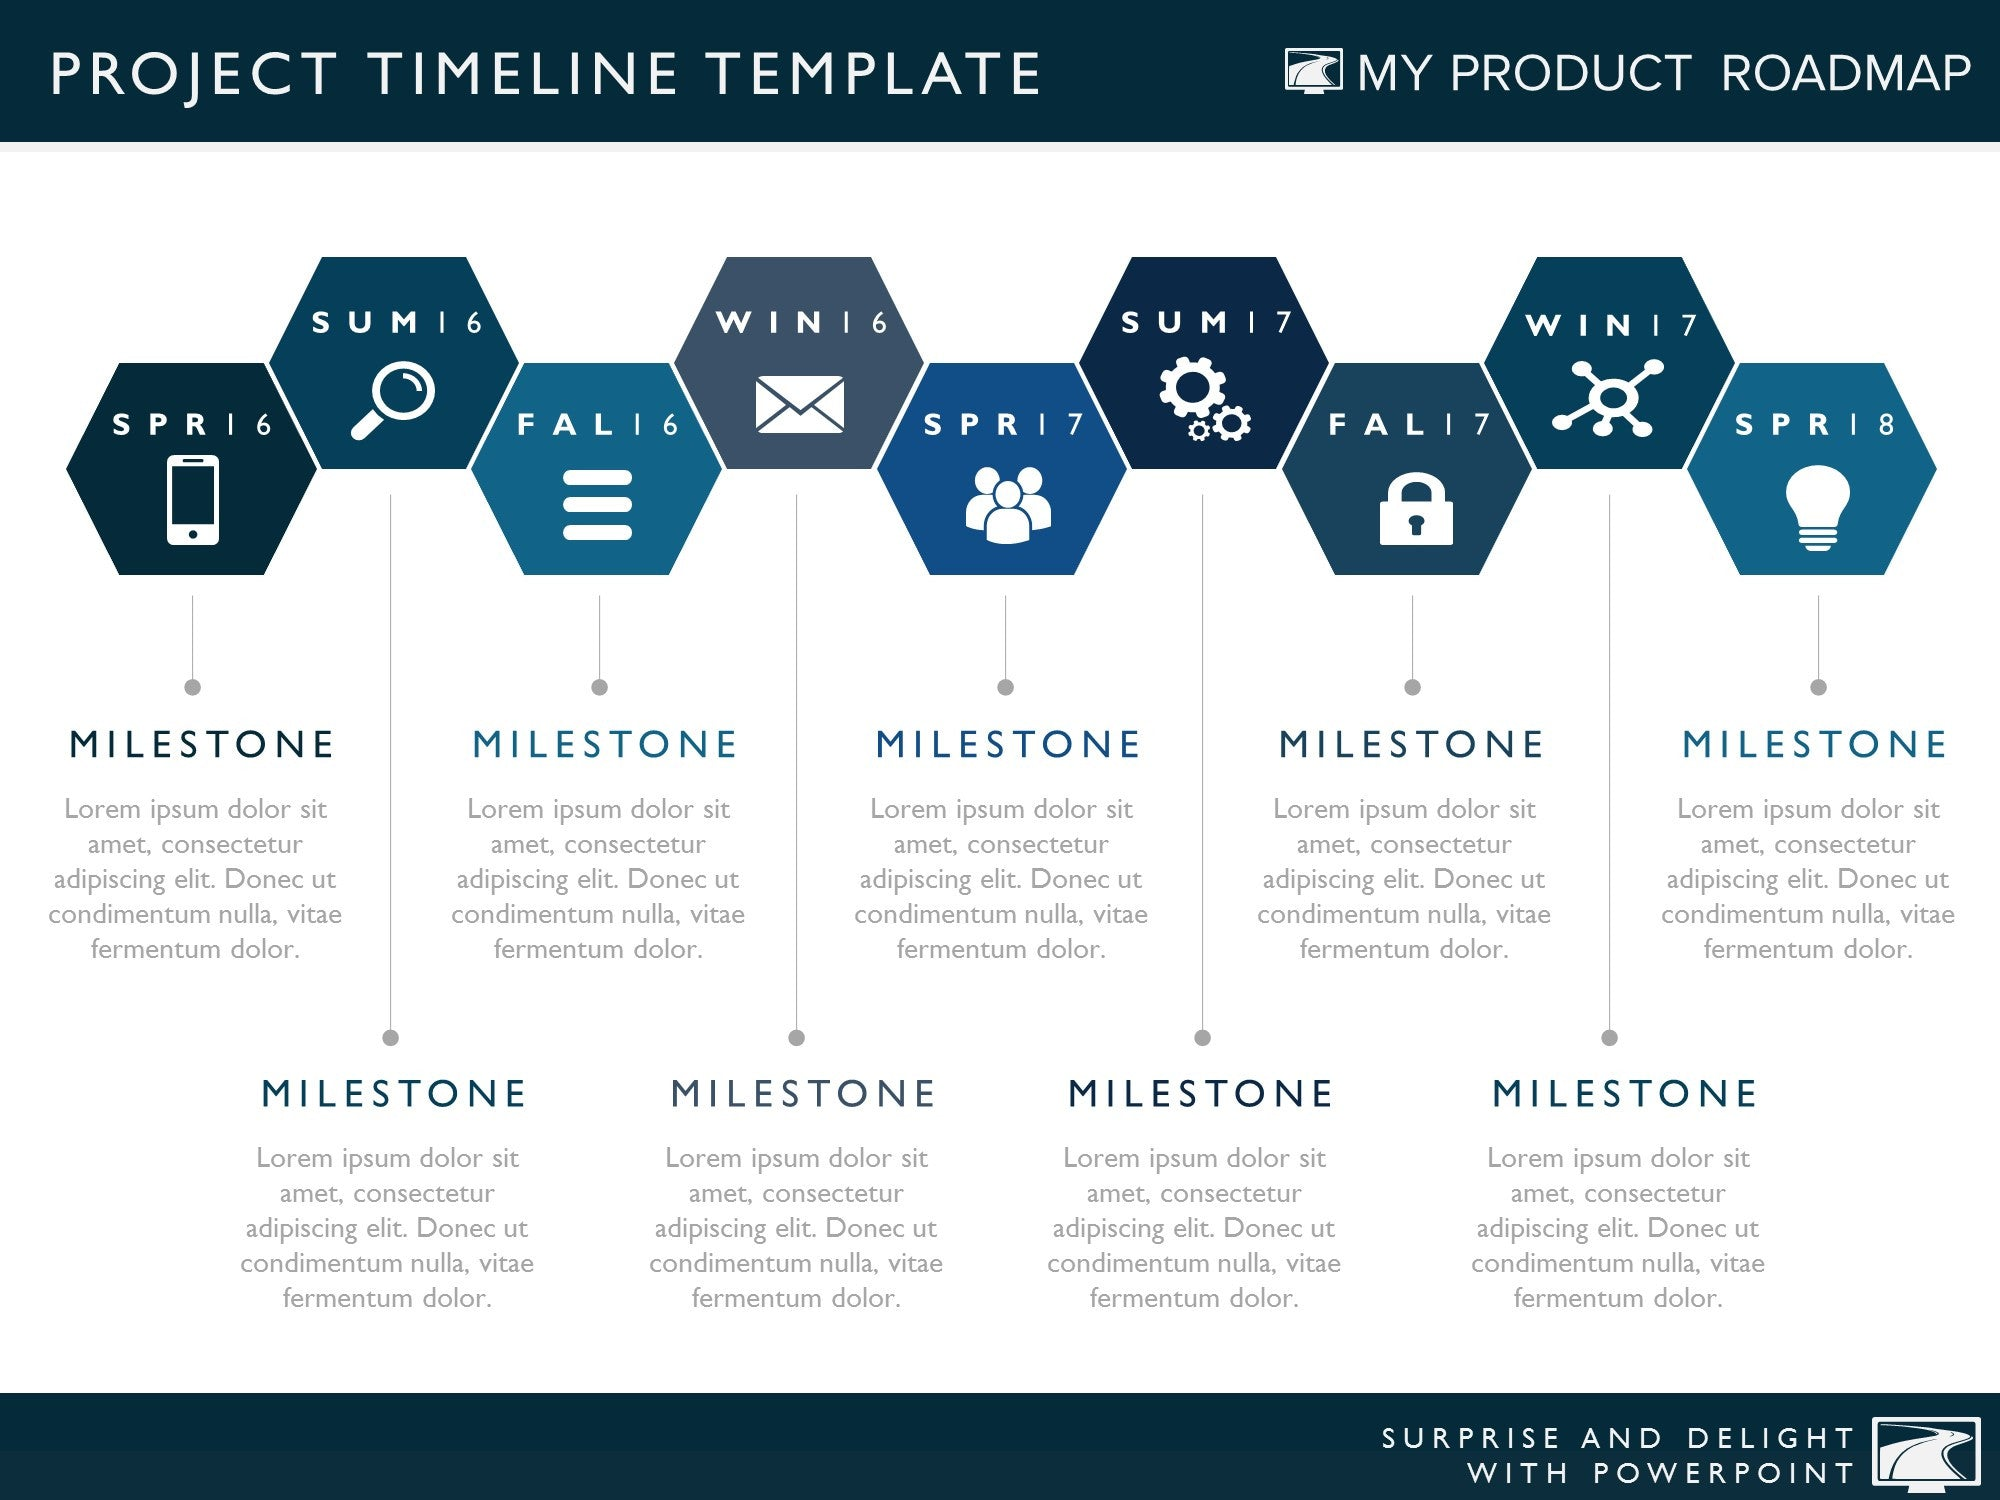 Nine Phase Project Timeline Template My Product Roadmap - Project timeline template